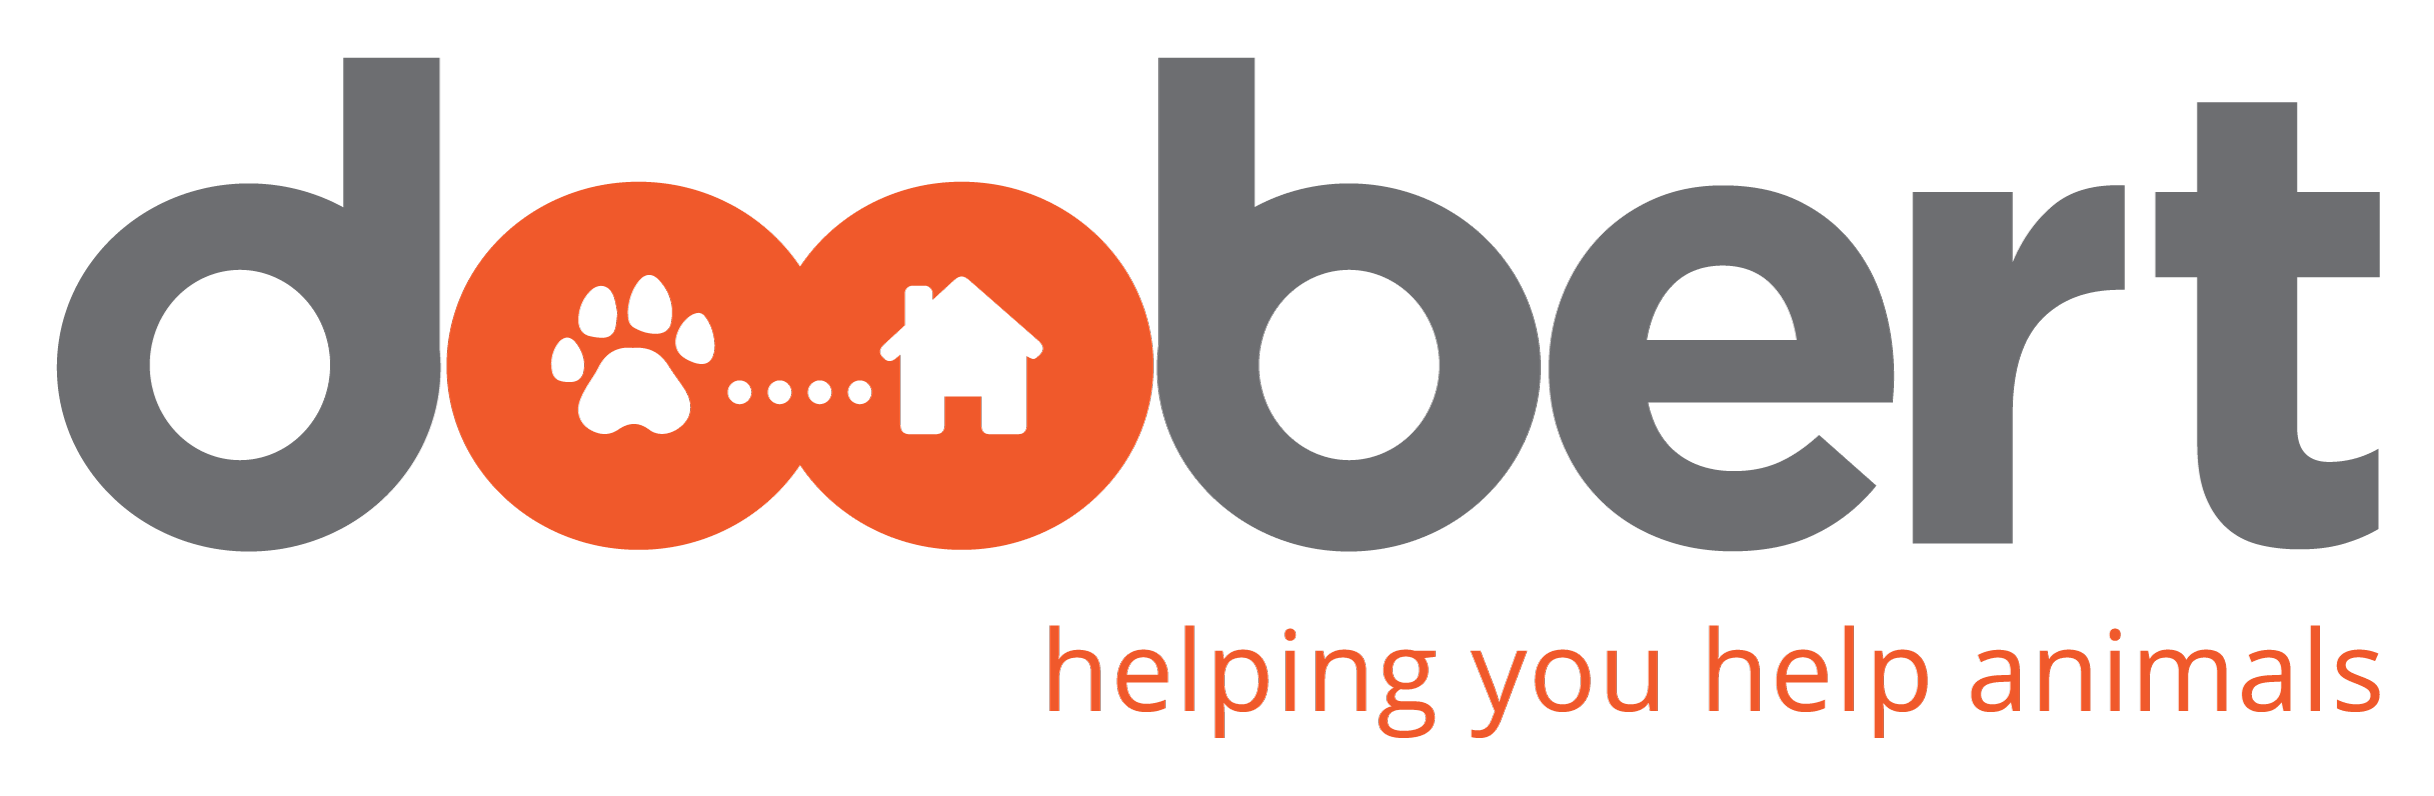 Doobert - helping you help animals